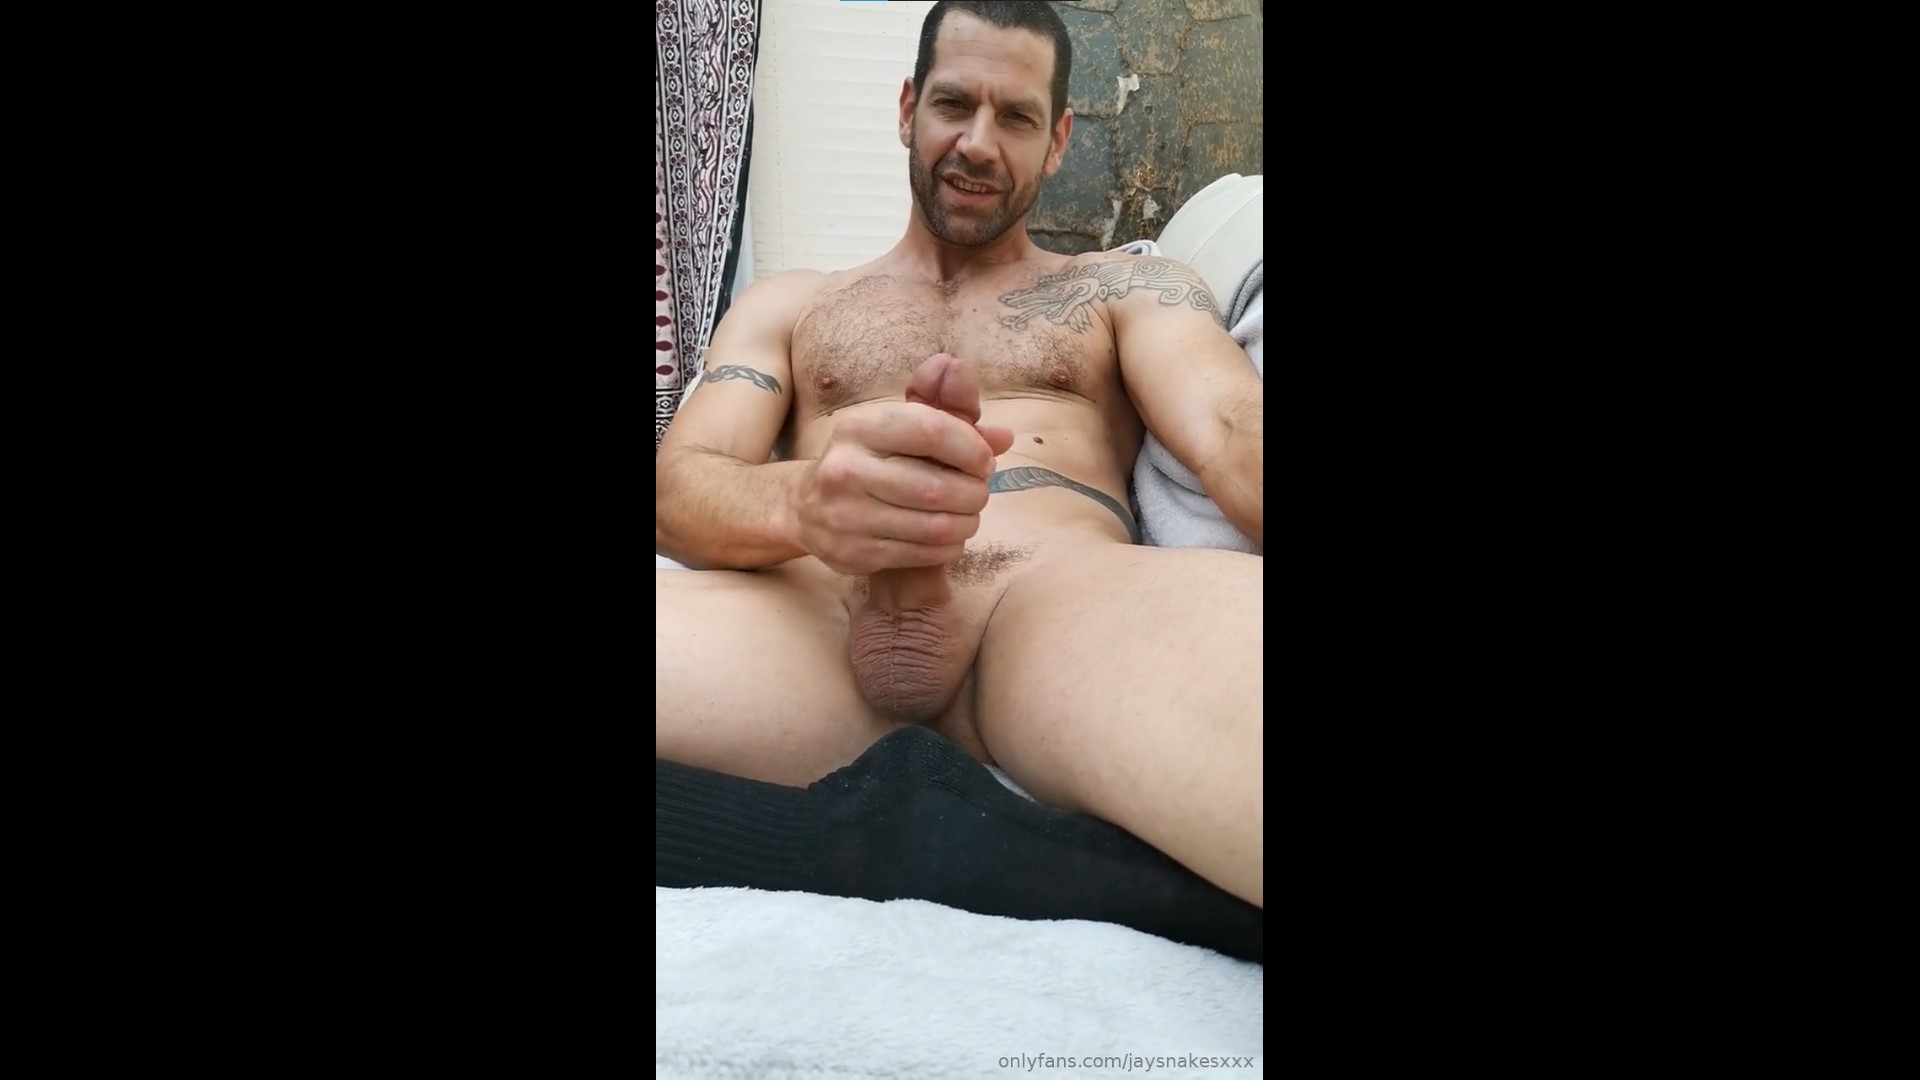 Jerking off and cumming over myself - Jay Snake